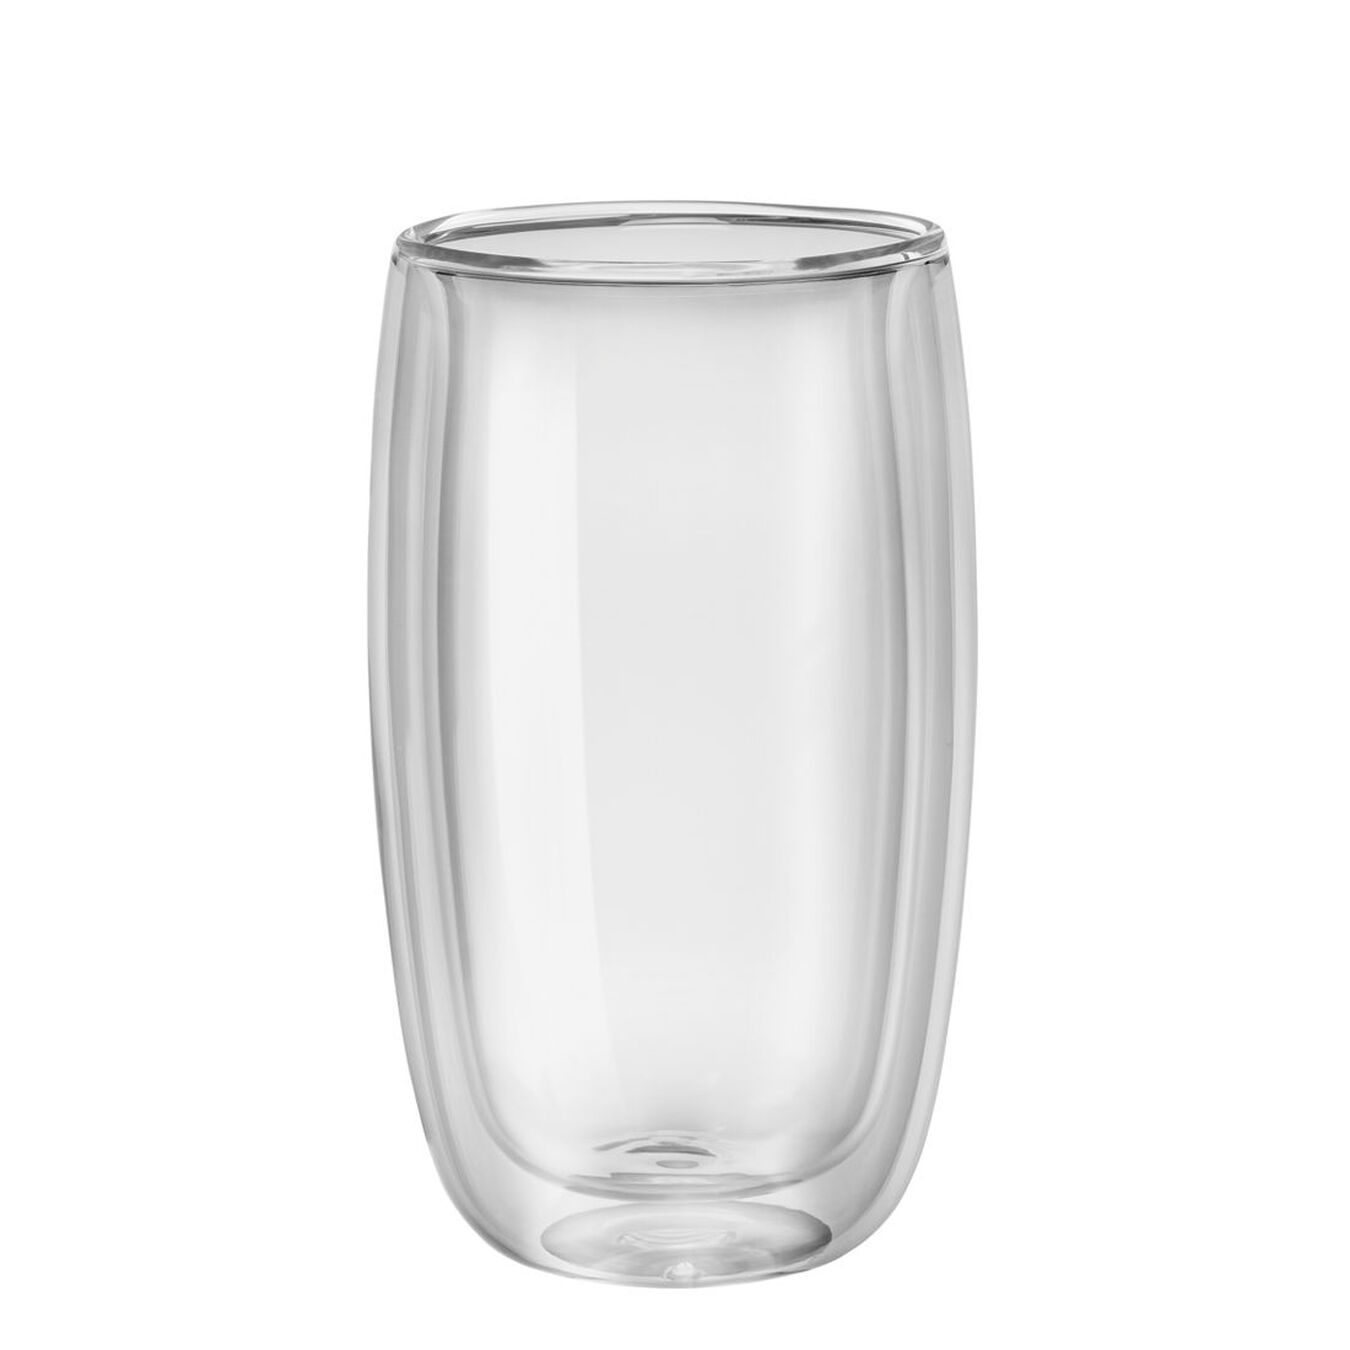 2-pc Double-Wall Glass Latte Cup Set,,large 2